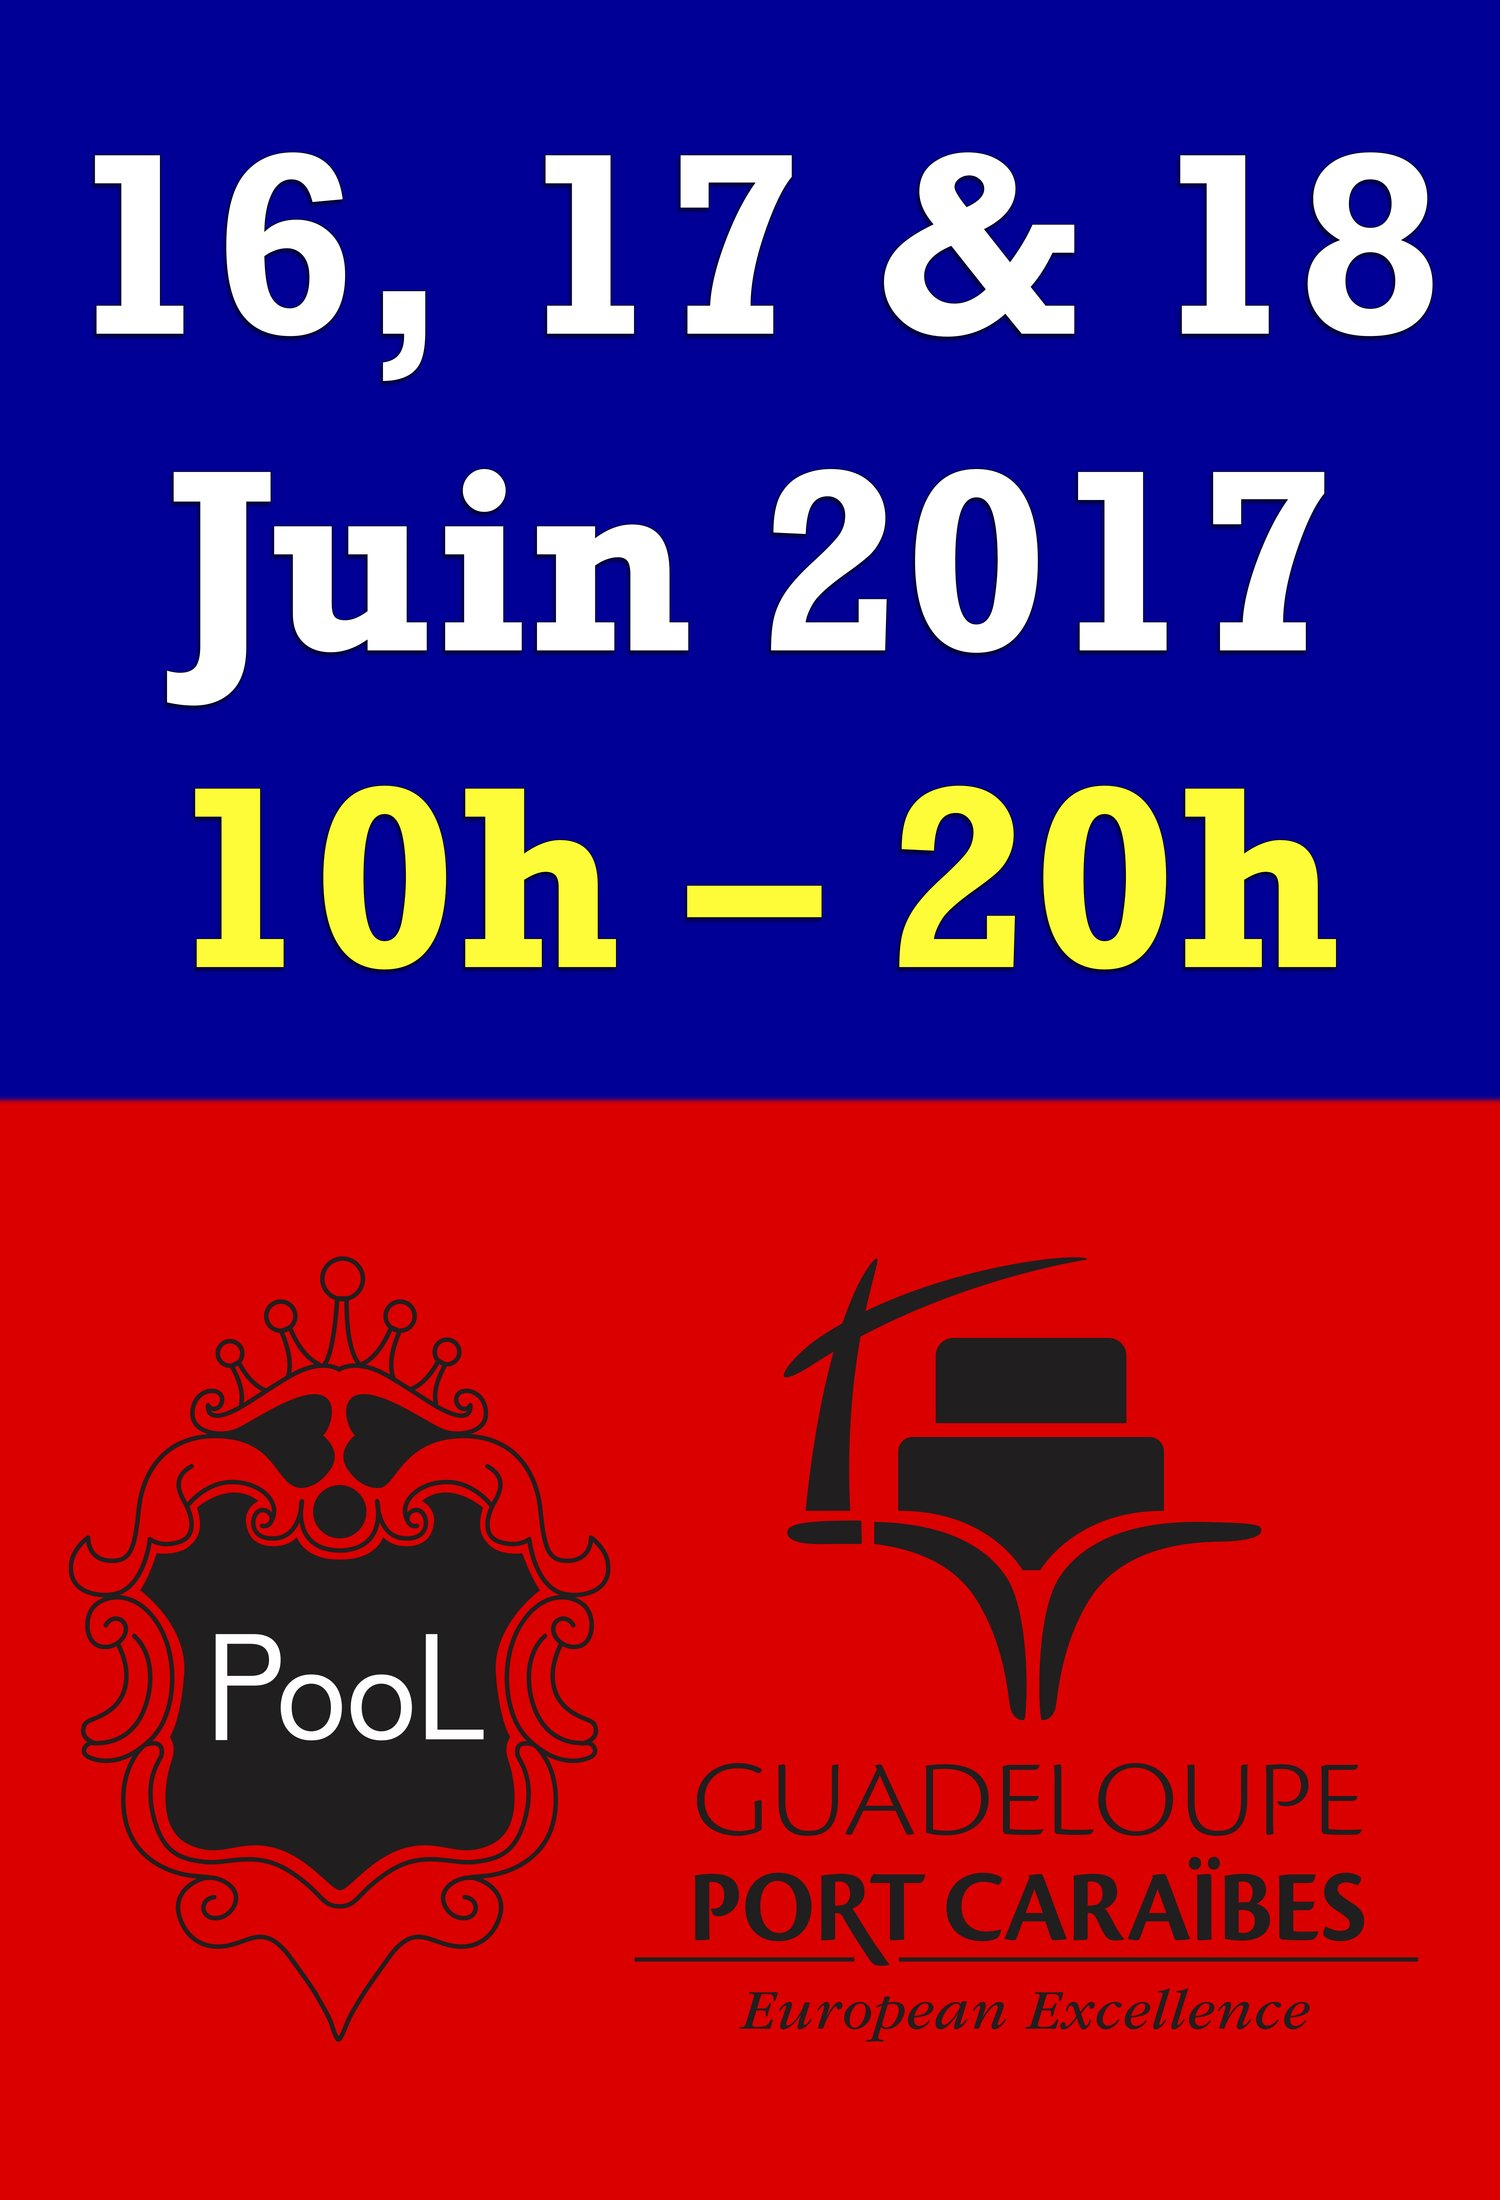 POOL ART FAIR GUADELOUPE 2017